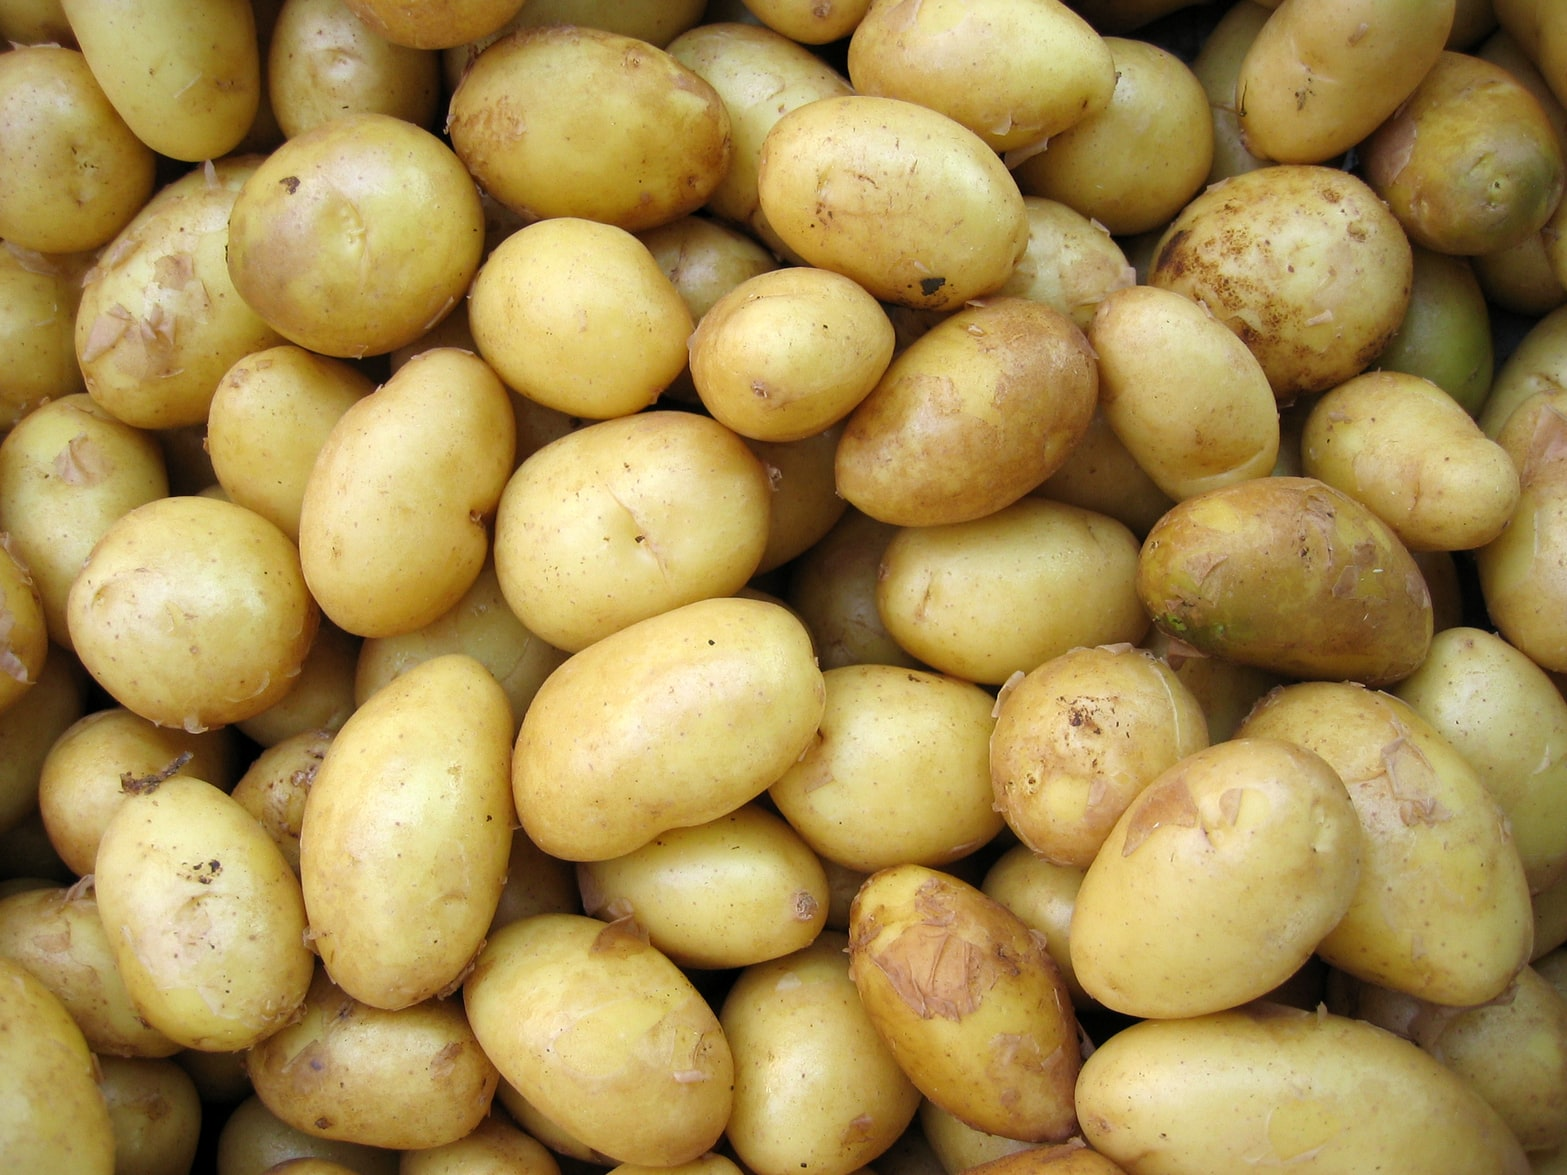 potatoes and pregnancy health risks